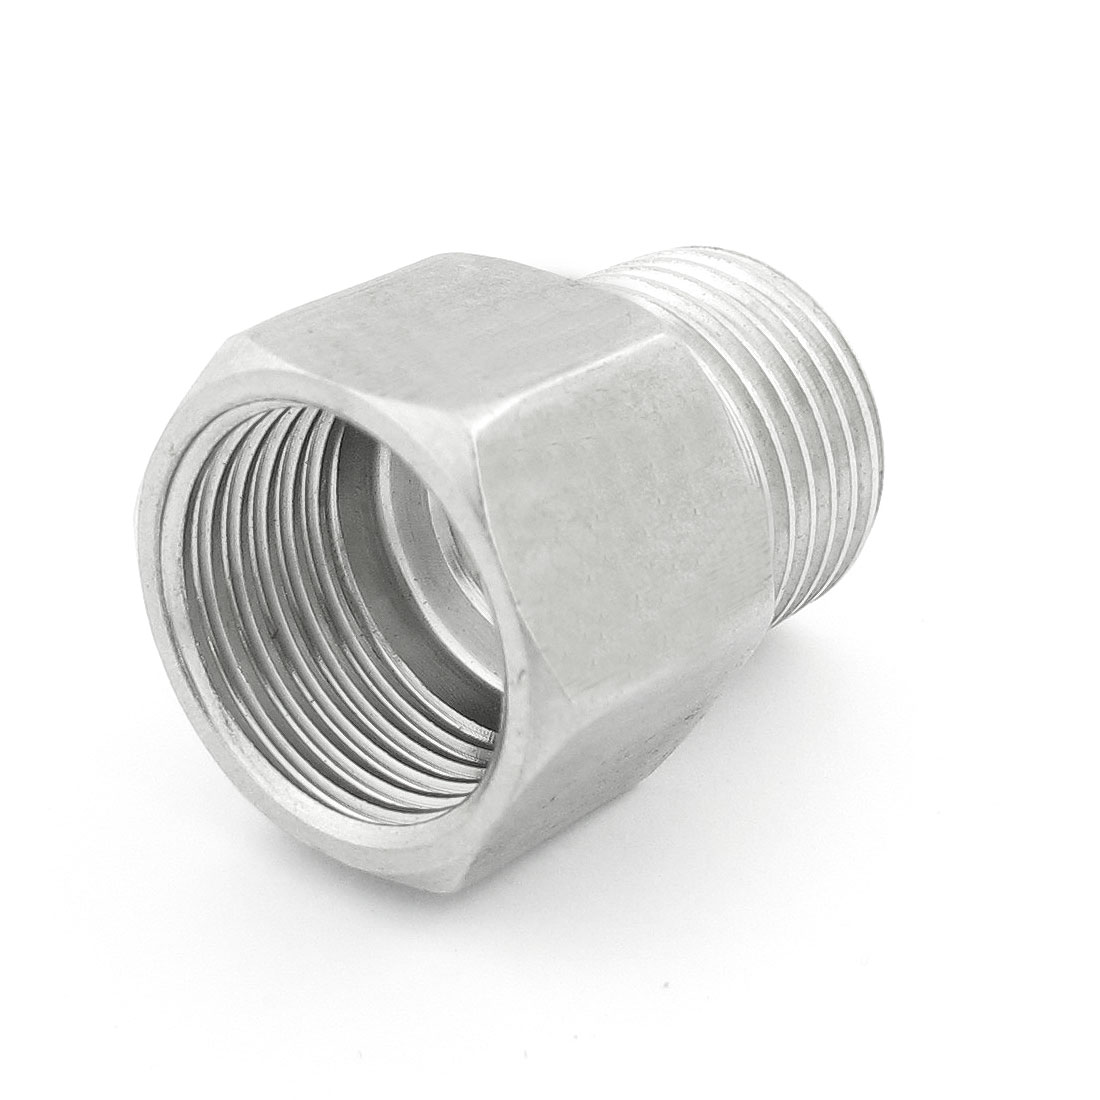 Pipe Reducer Male 1/2PT to Female 1/2NPT Stainless Steel Hex Bushing Hose Joint Connector